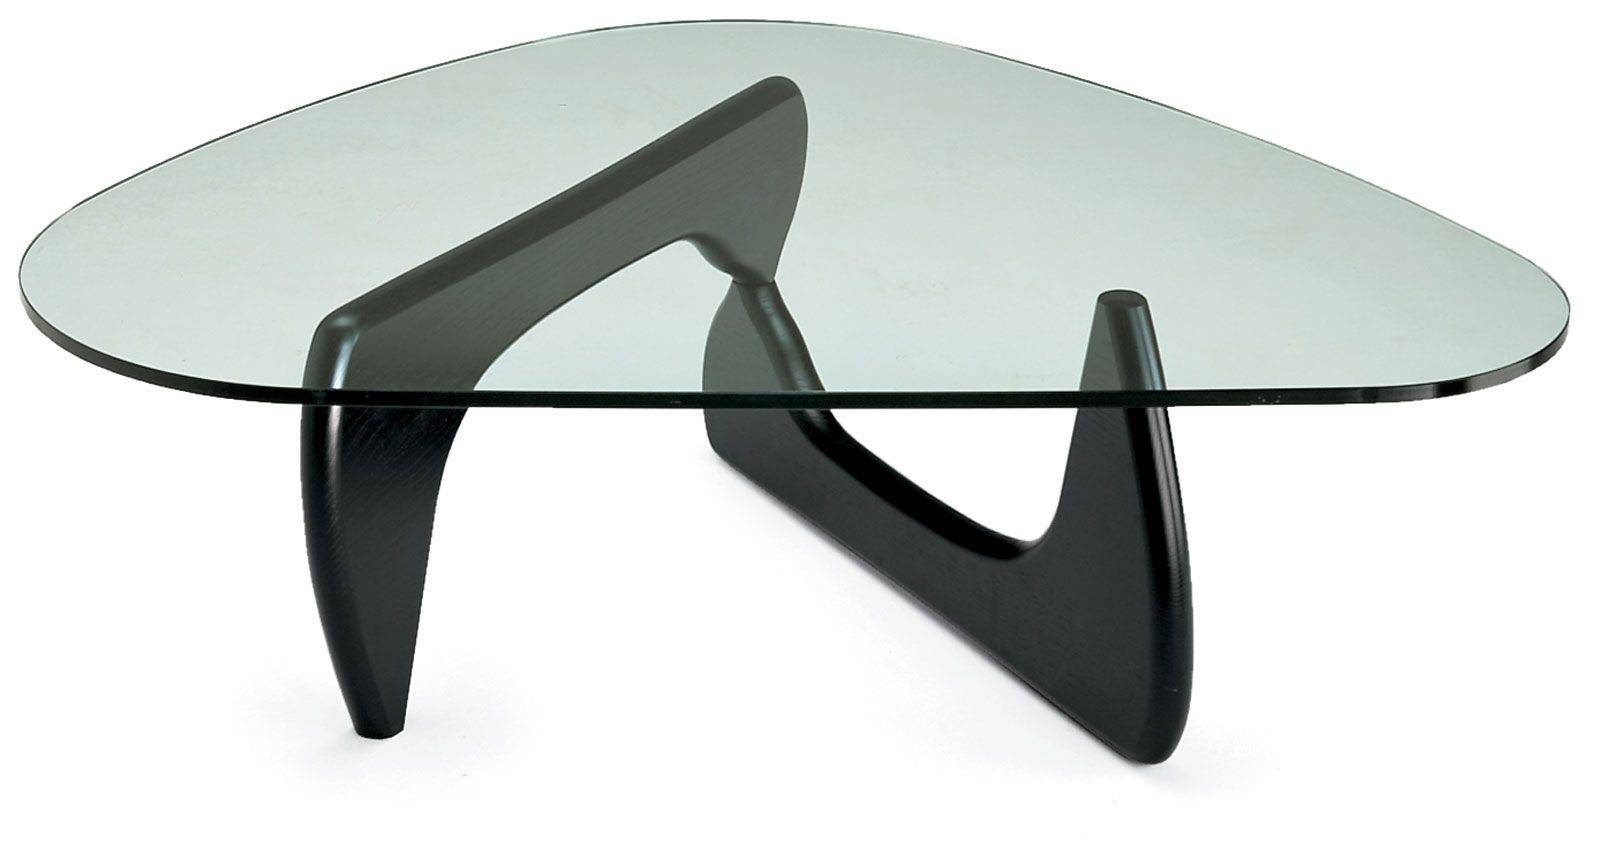 Malik Gallery Collection | Isamu Noguchi Coffee Table Inside Noguchi Coffee Tables (Gallery 9 of 30)